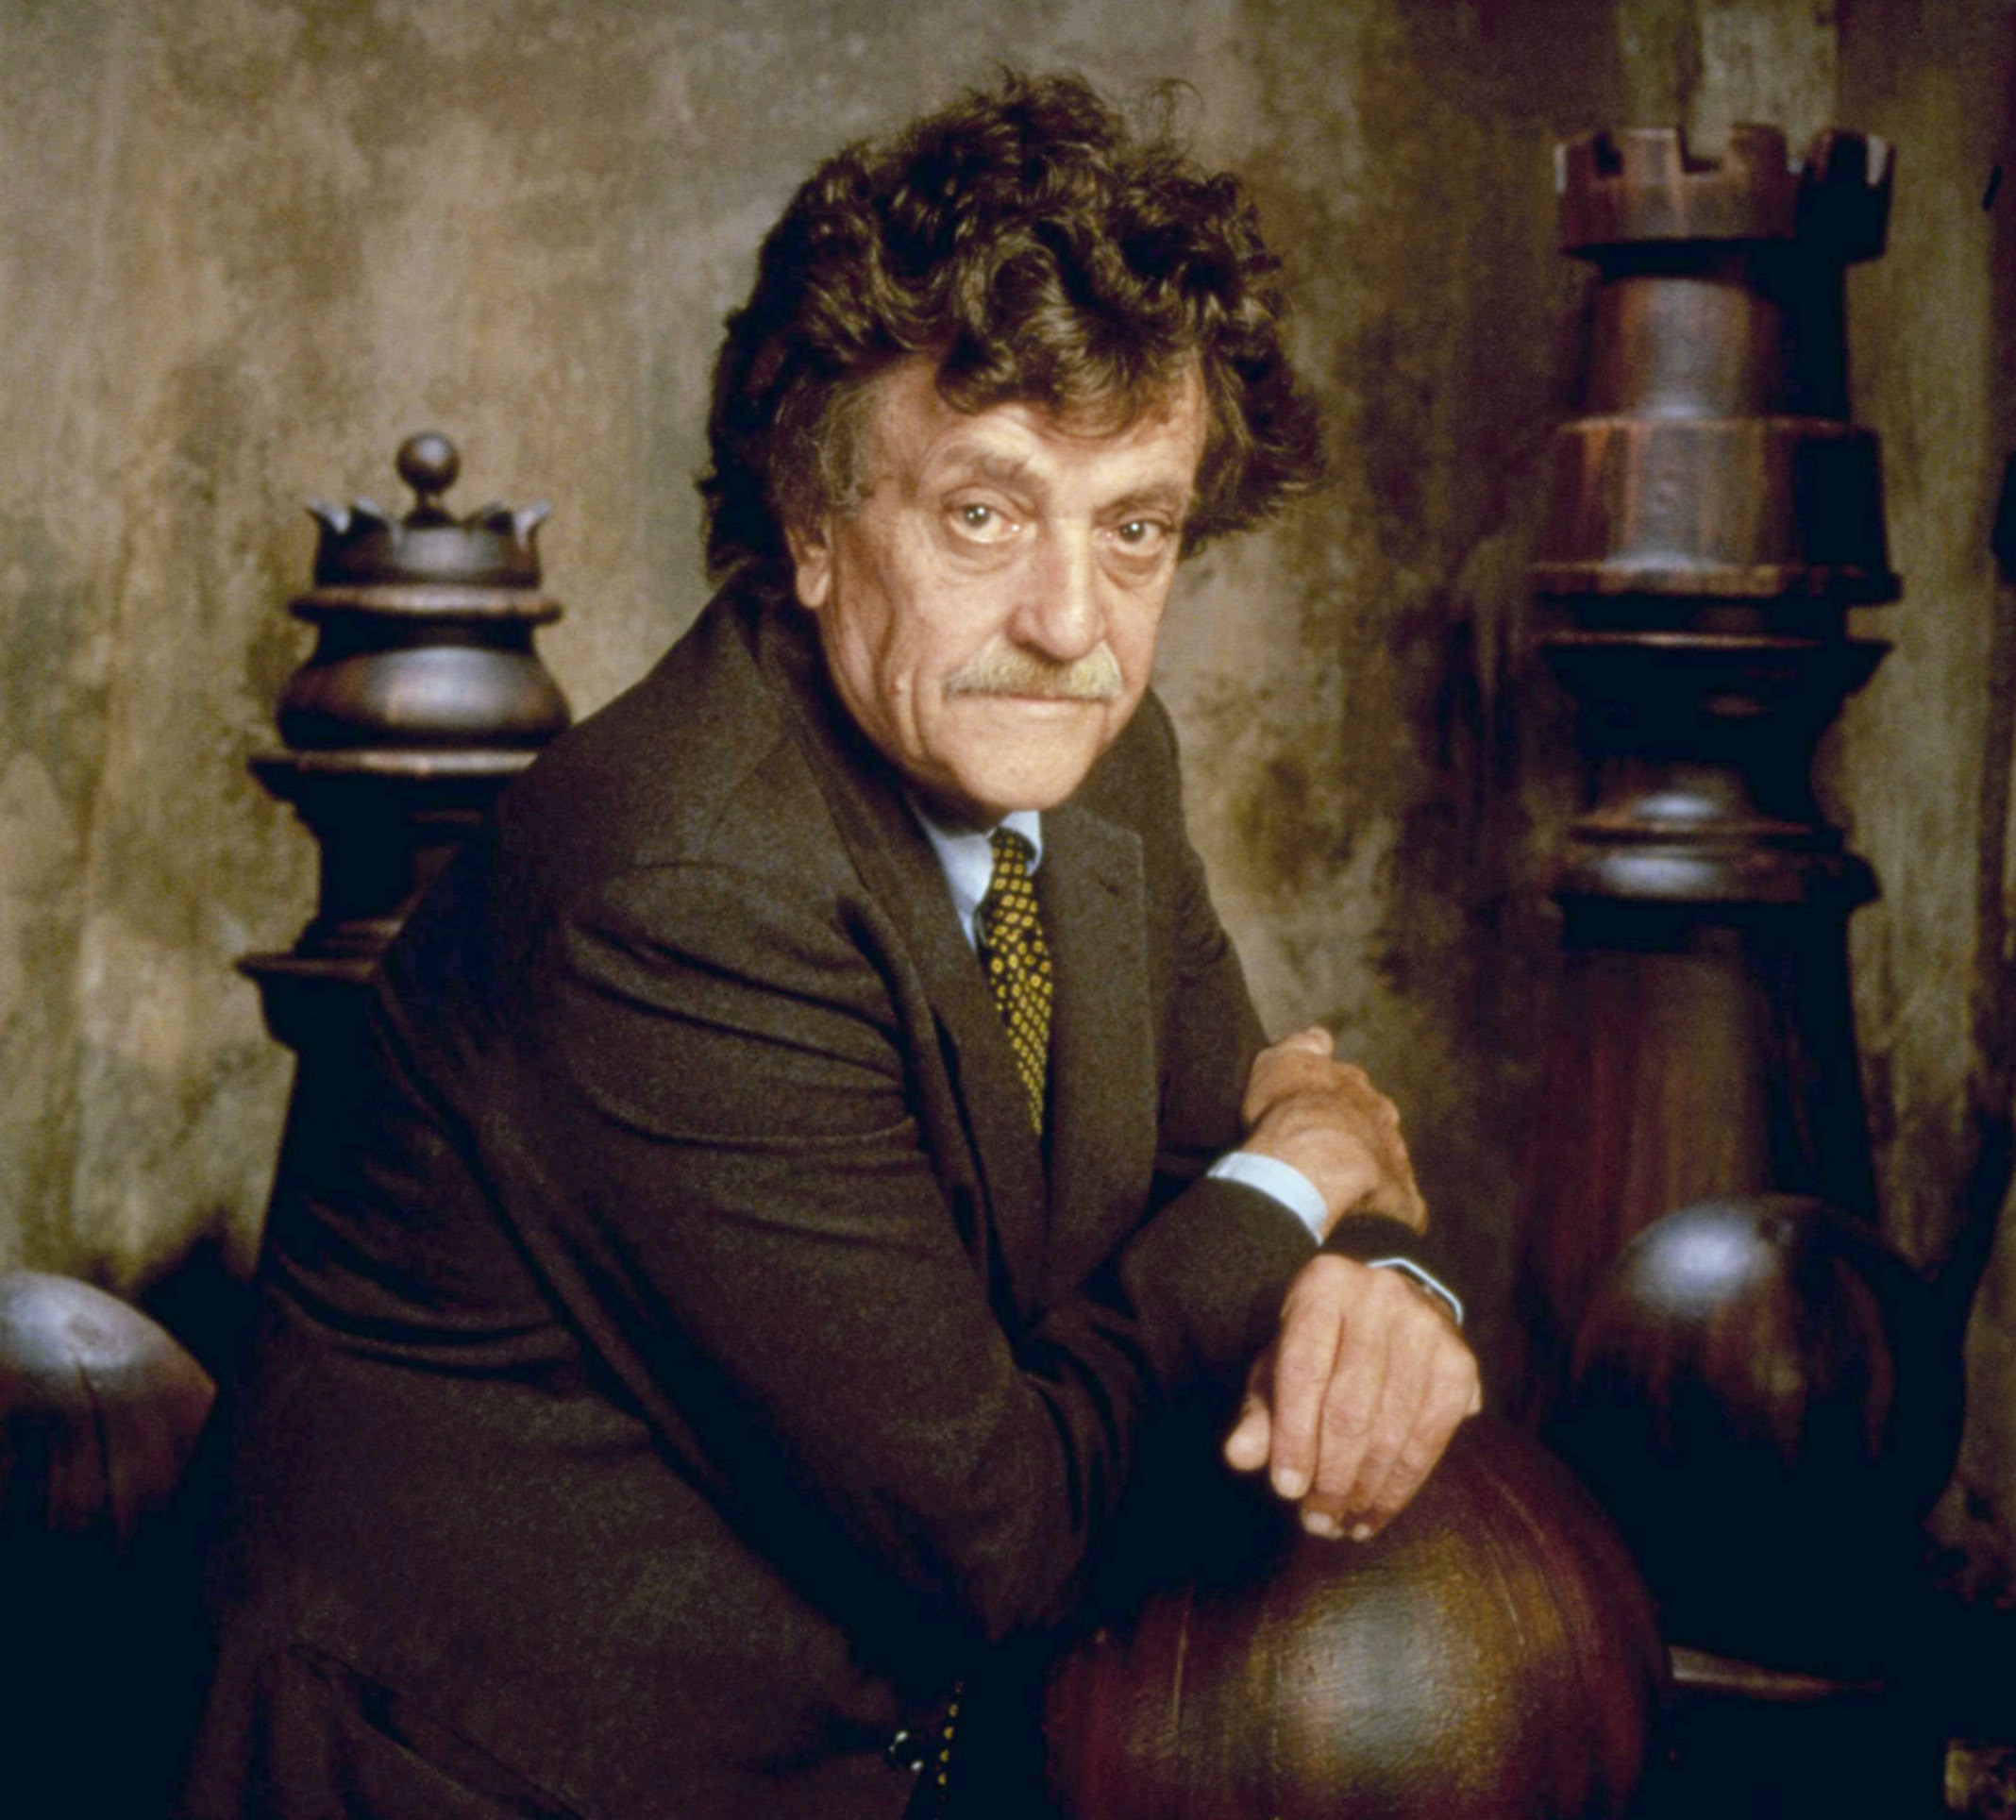 Kurt Vonnegut in a suit and polka dot tie posing with giant chess pieces